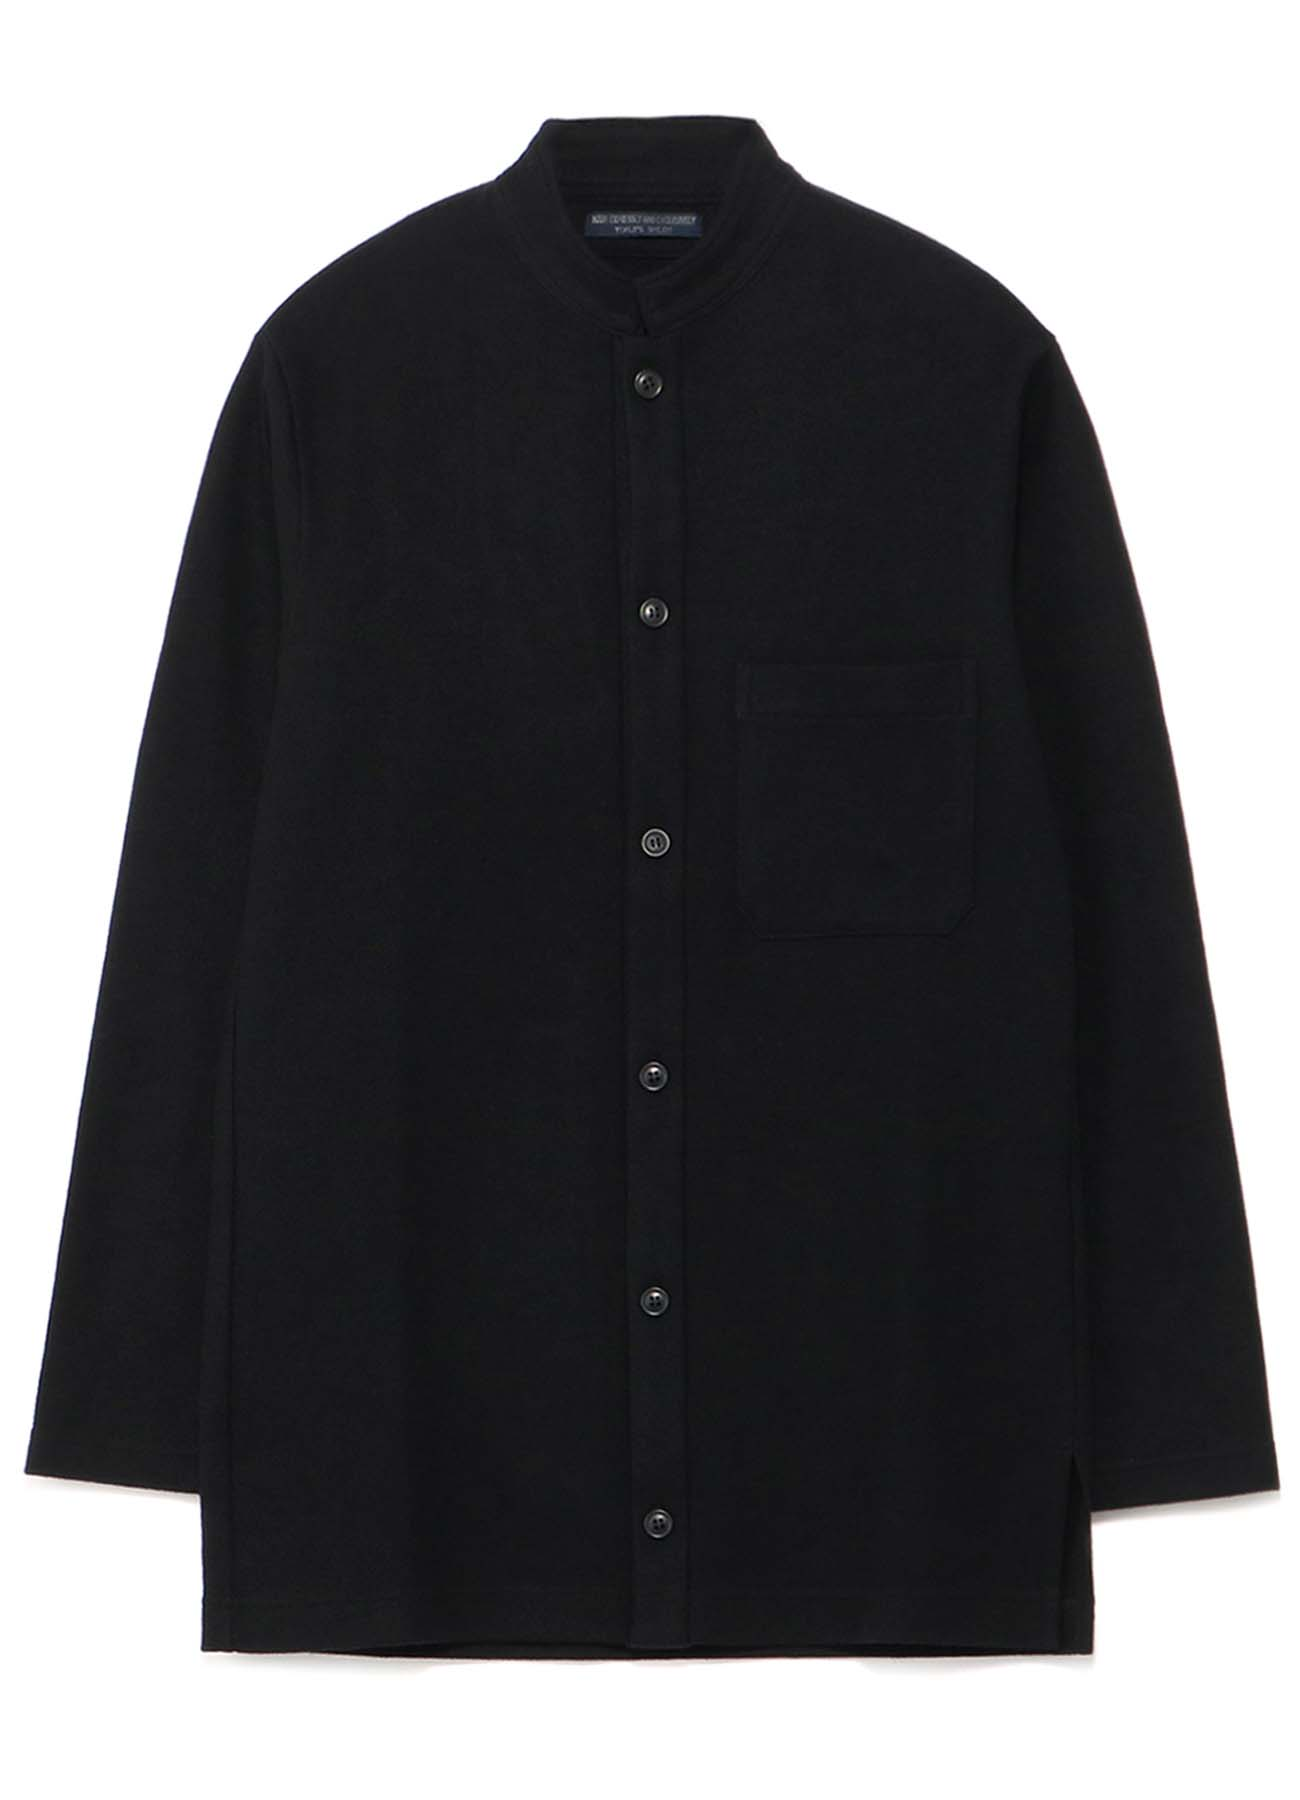 REGULATION 1/60 COMPRESSED SMOOTH STAND COLLAR CARDIGAN